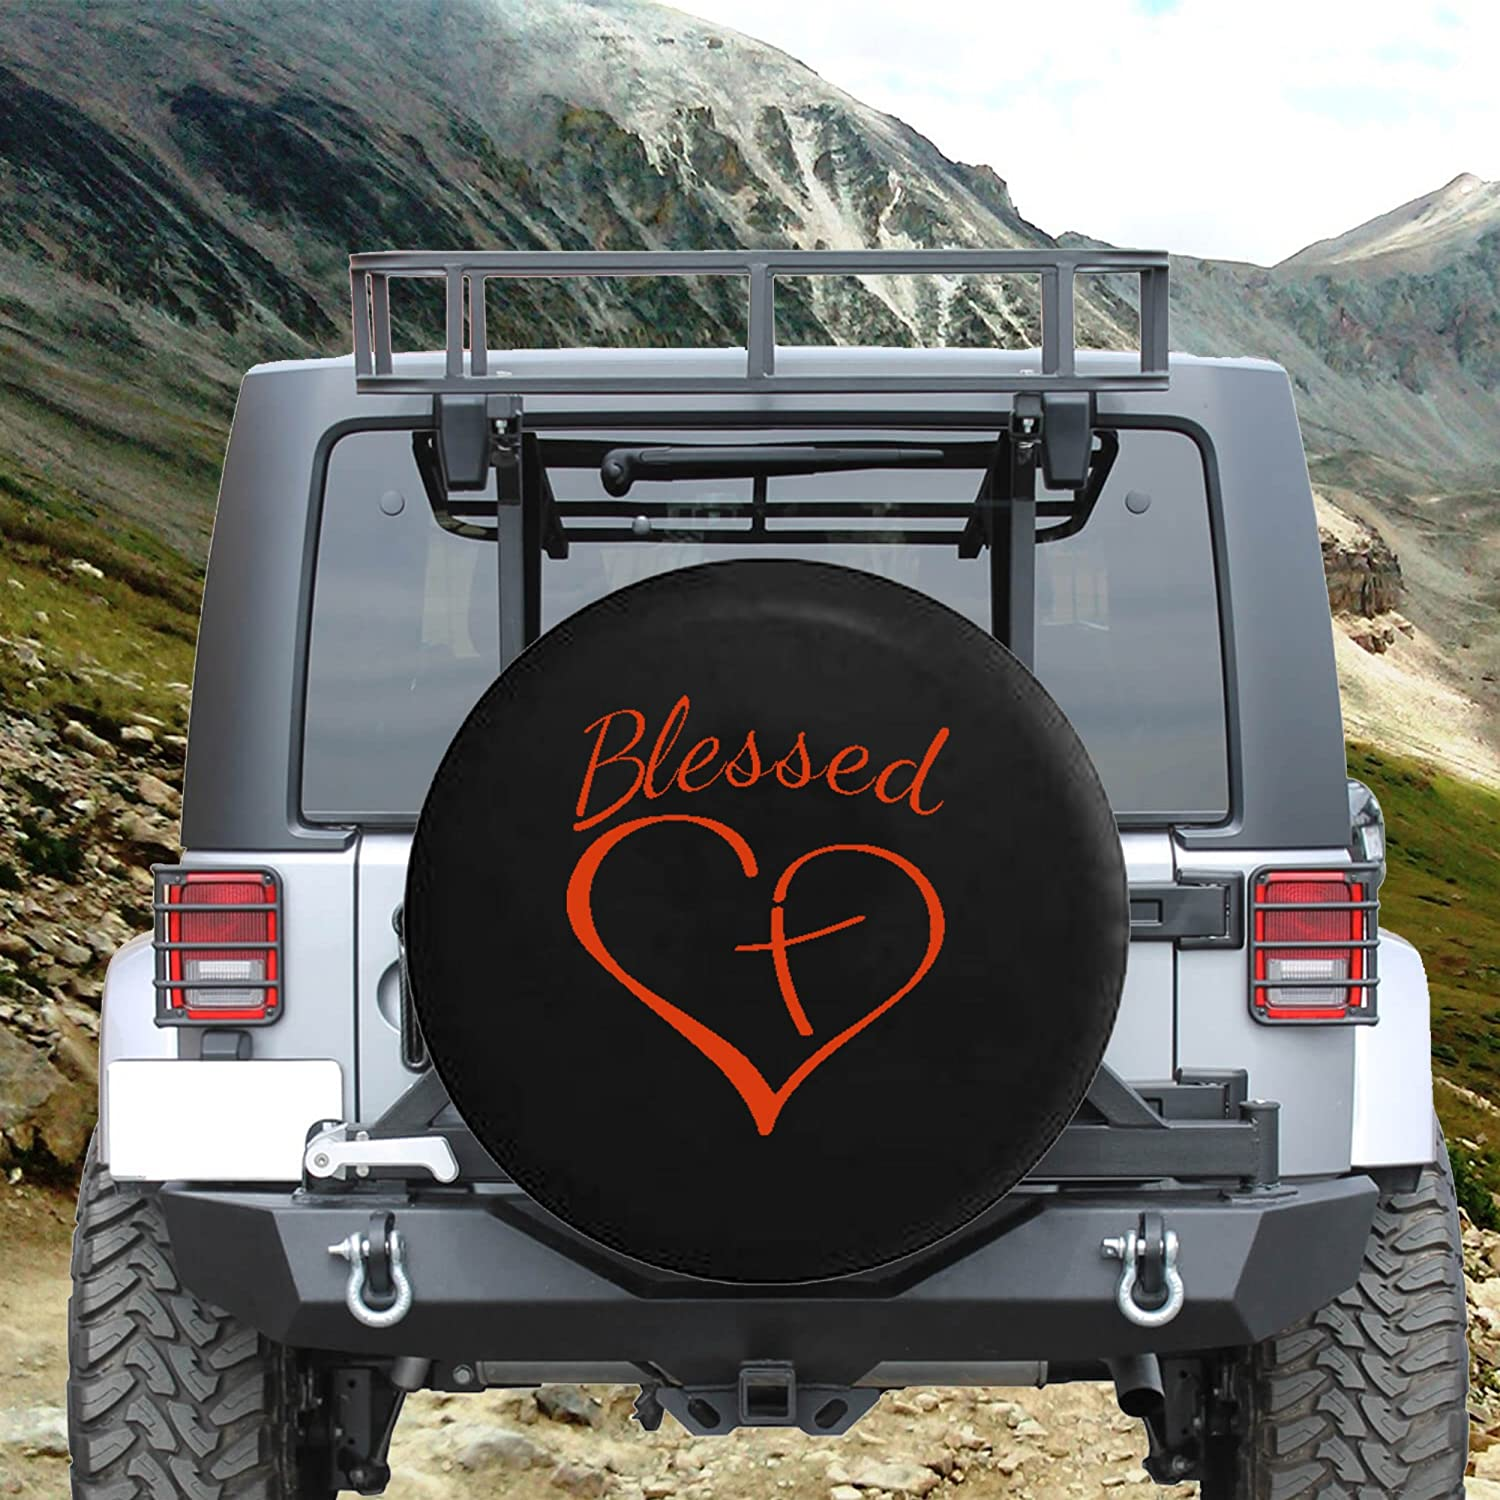 Blessed Heart with Cross Spare Tire Cover fits SUV Camper RV Accessories Orange Ink 33 in